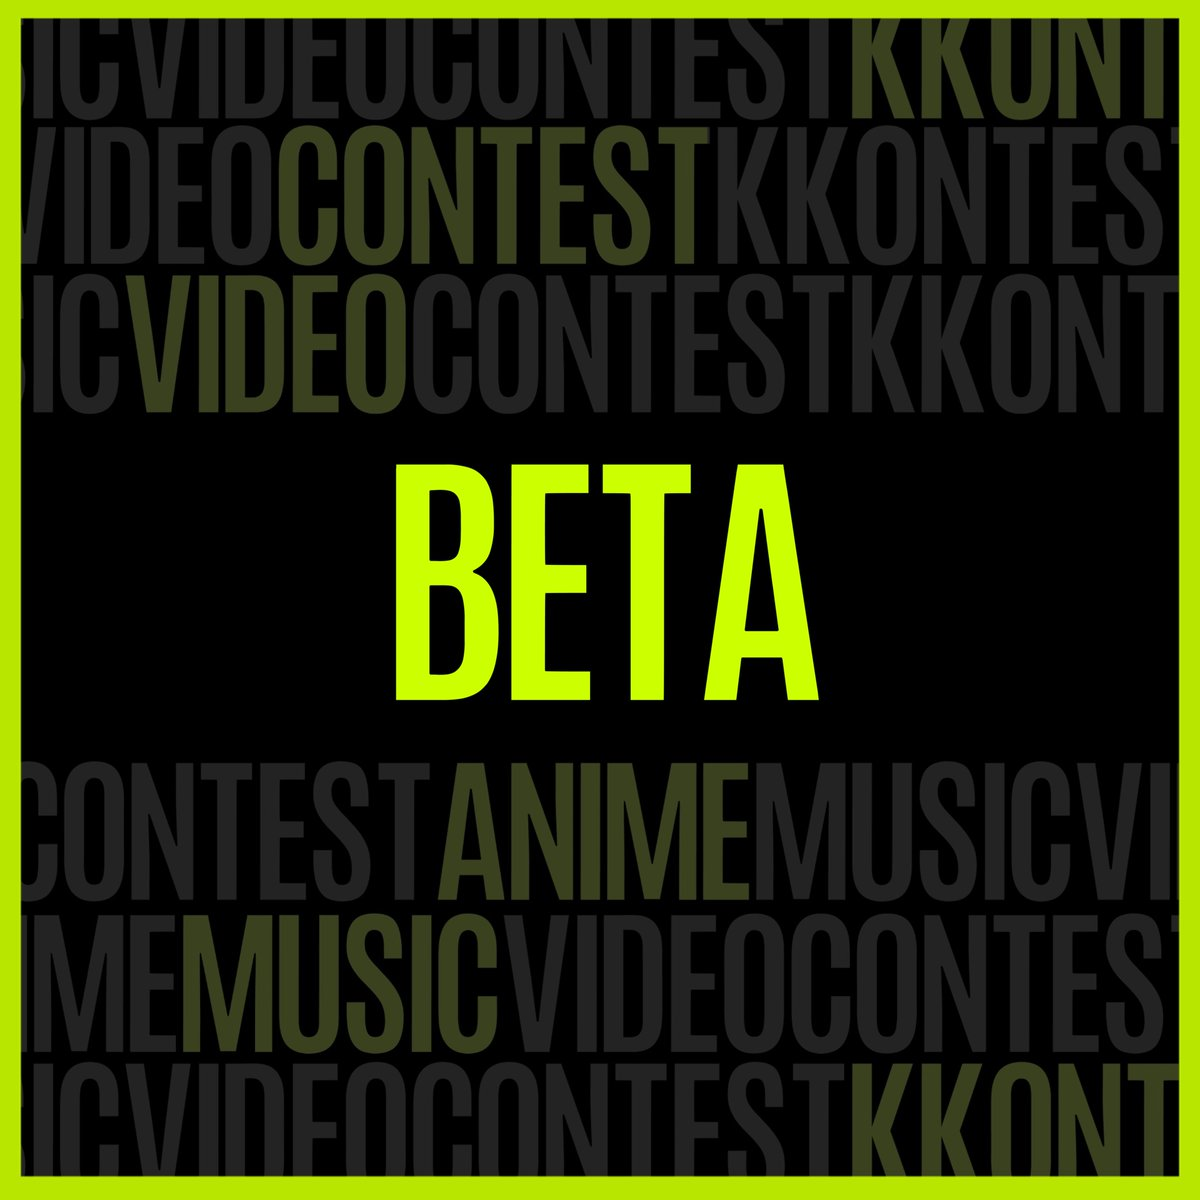 CATEGORY: BETA  Maximum length of your AMV must be 1 minute The only category you can join with an #AMV shorter than 1 minute All kinds of AMVs - keep in mind that the competition may be higher than in other categories.  #KKONTEST 2020: https://kkontest.pl/   #amvcontest pic.twitter.com/JHPrCu9fnp